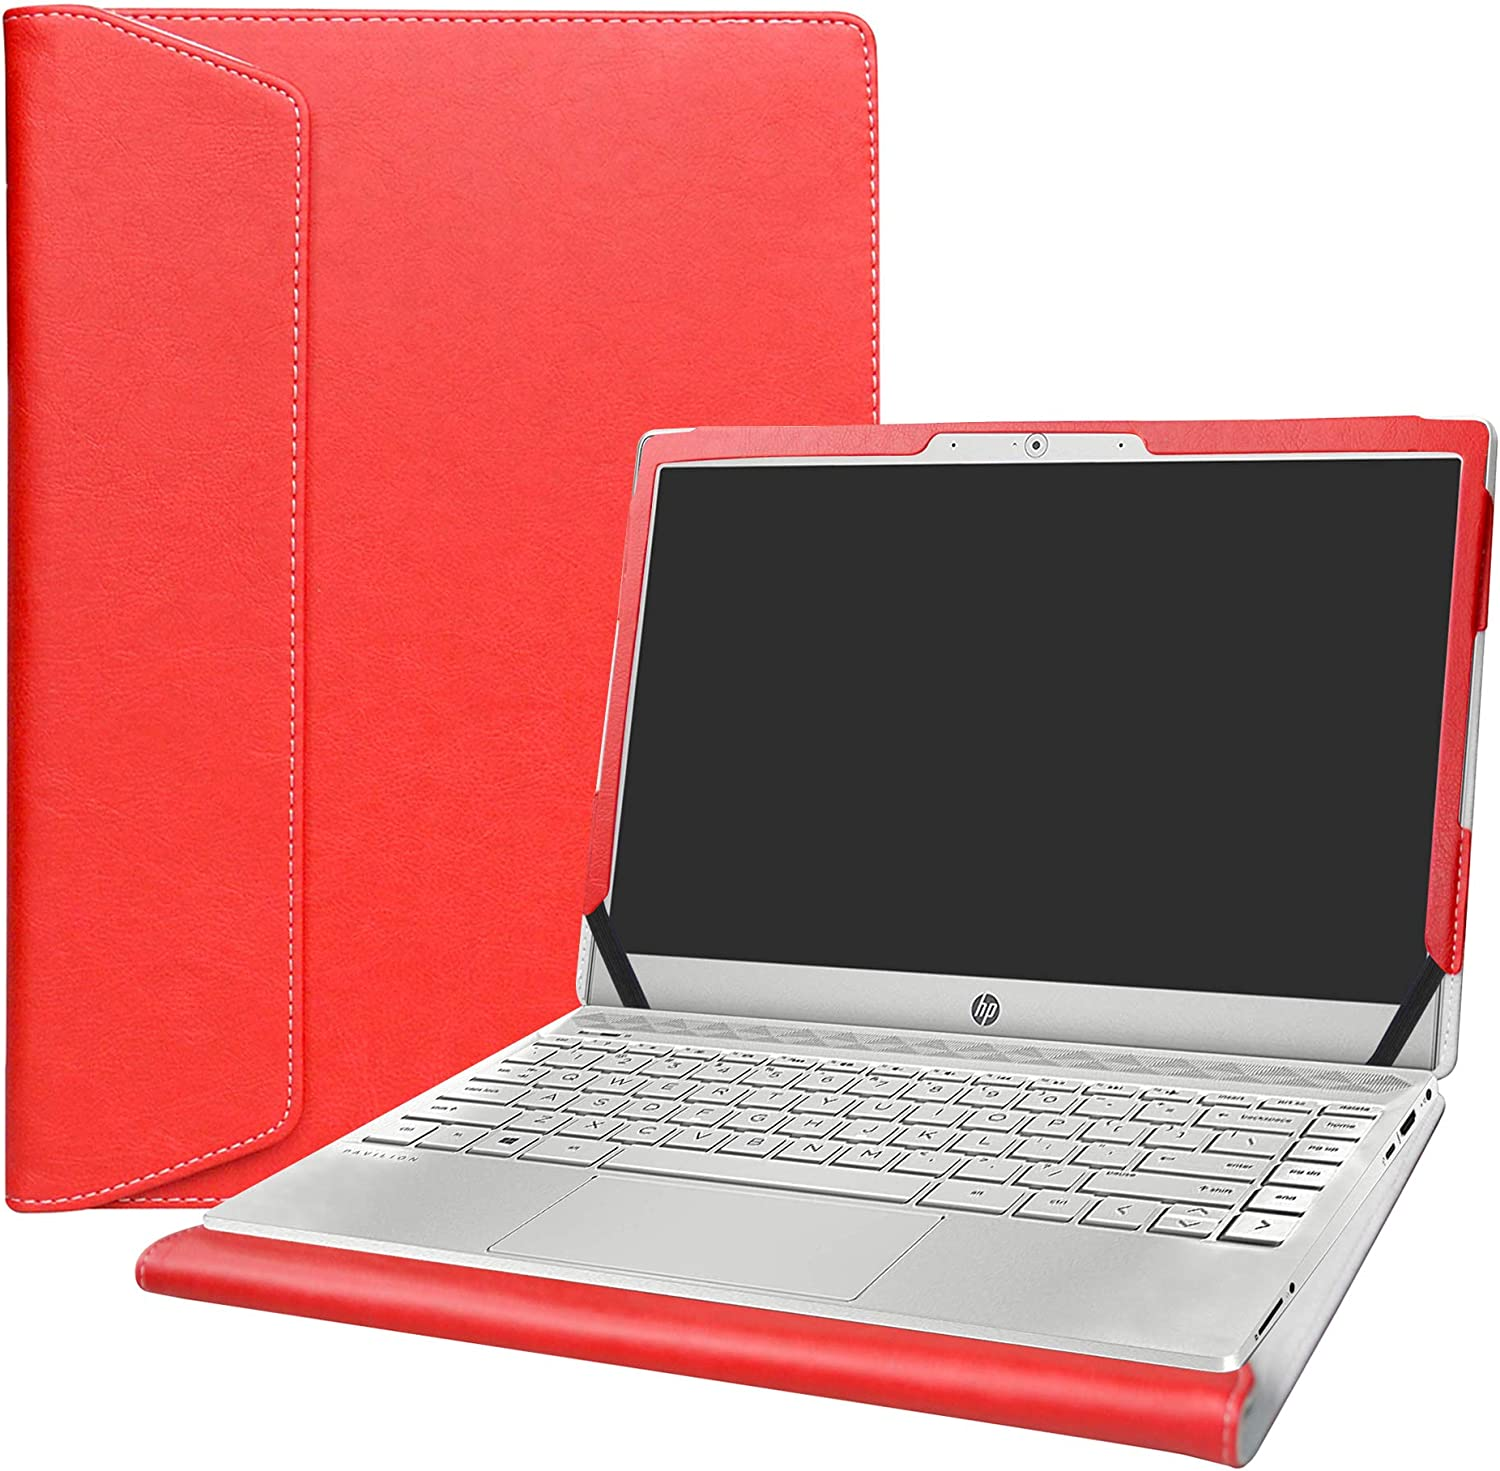 "Alapmk Protective Case Cover for 13.3"" HP Pavilion 13 13-anXXXX Series Laptop [Warning:Not fit Pavilion 13 13-bXXX Series],Red"